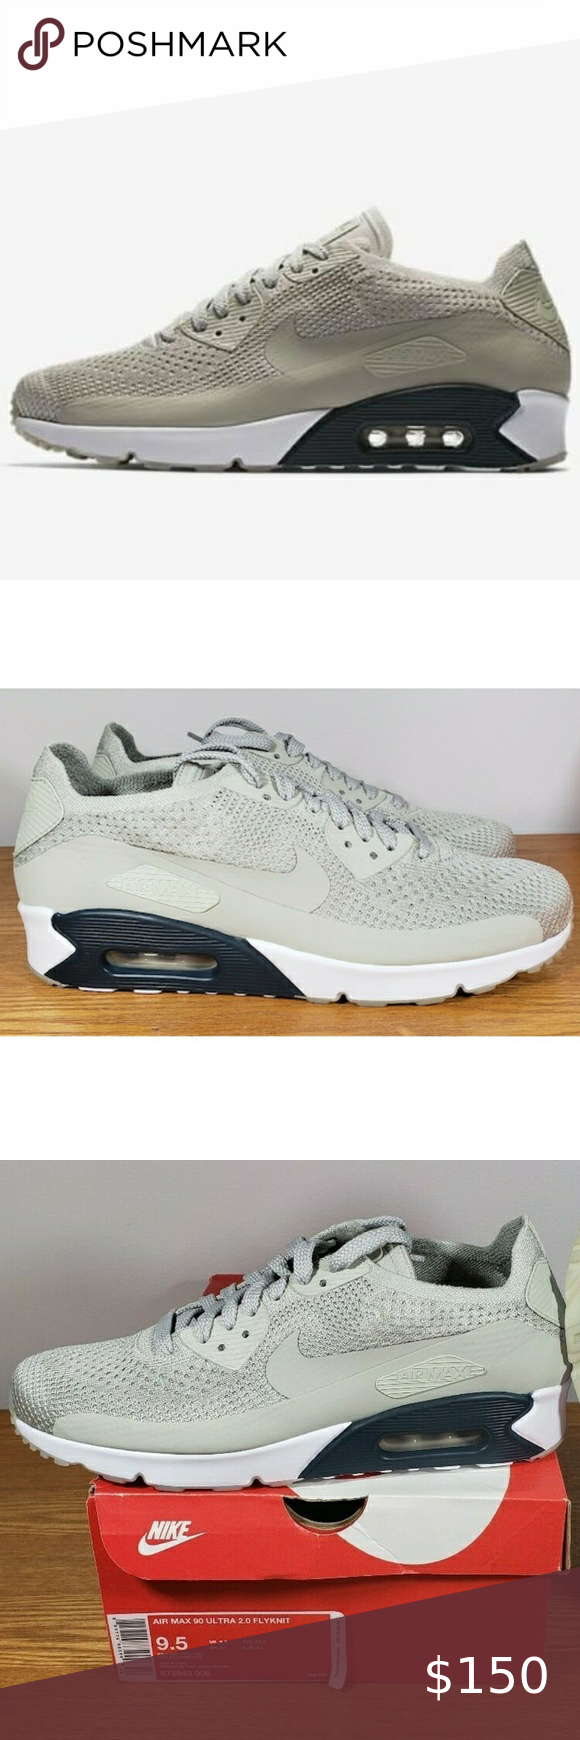 Nike Air Max 90 Ultra 2.0 Flyknit (Size